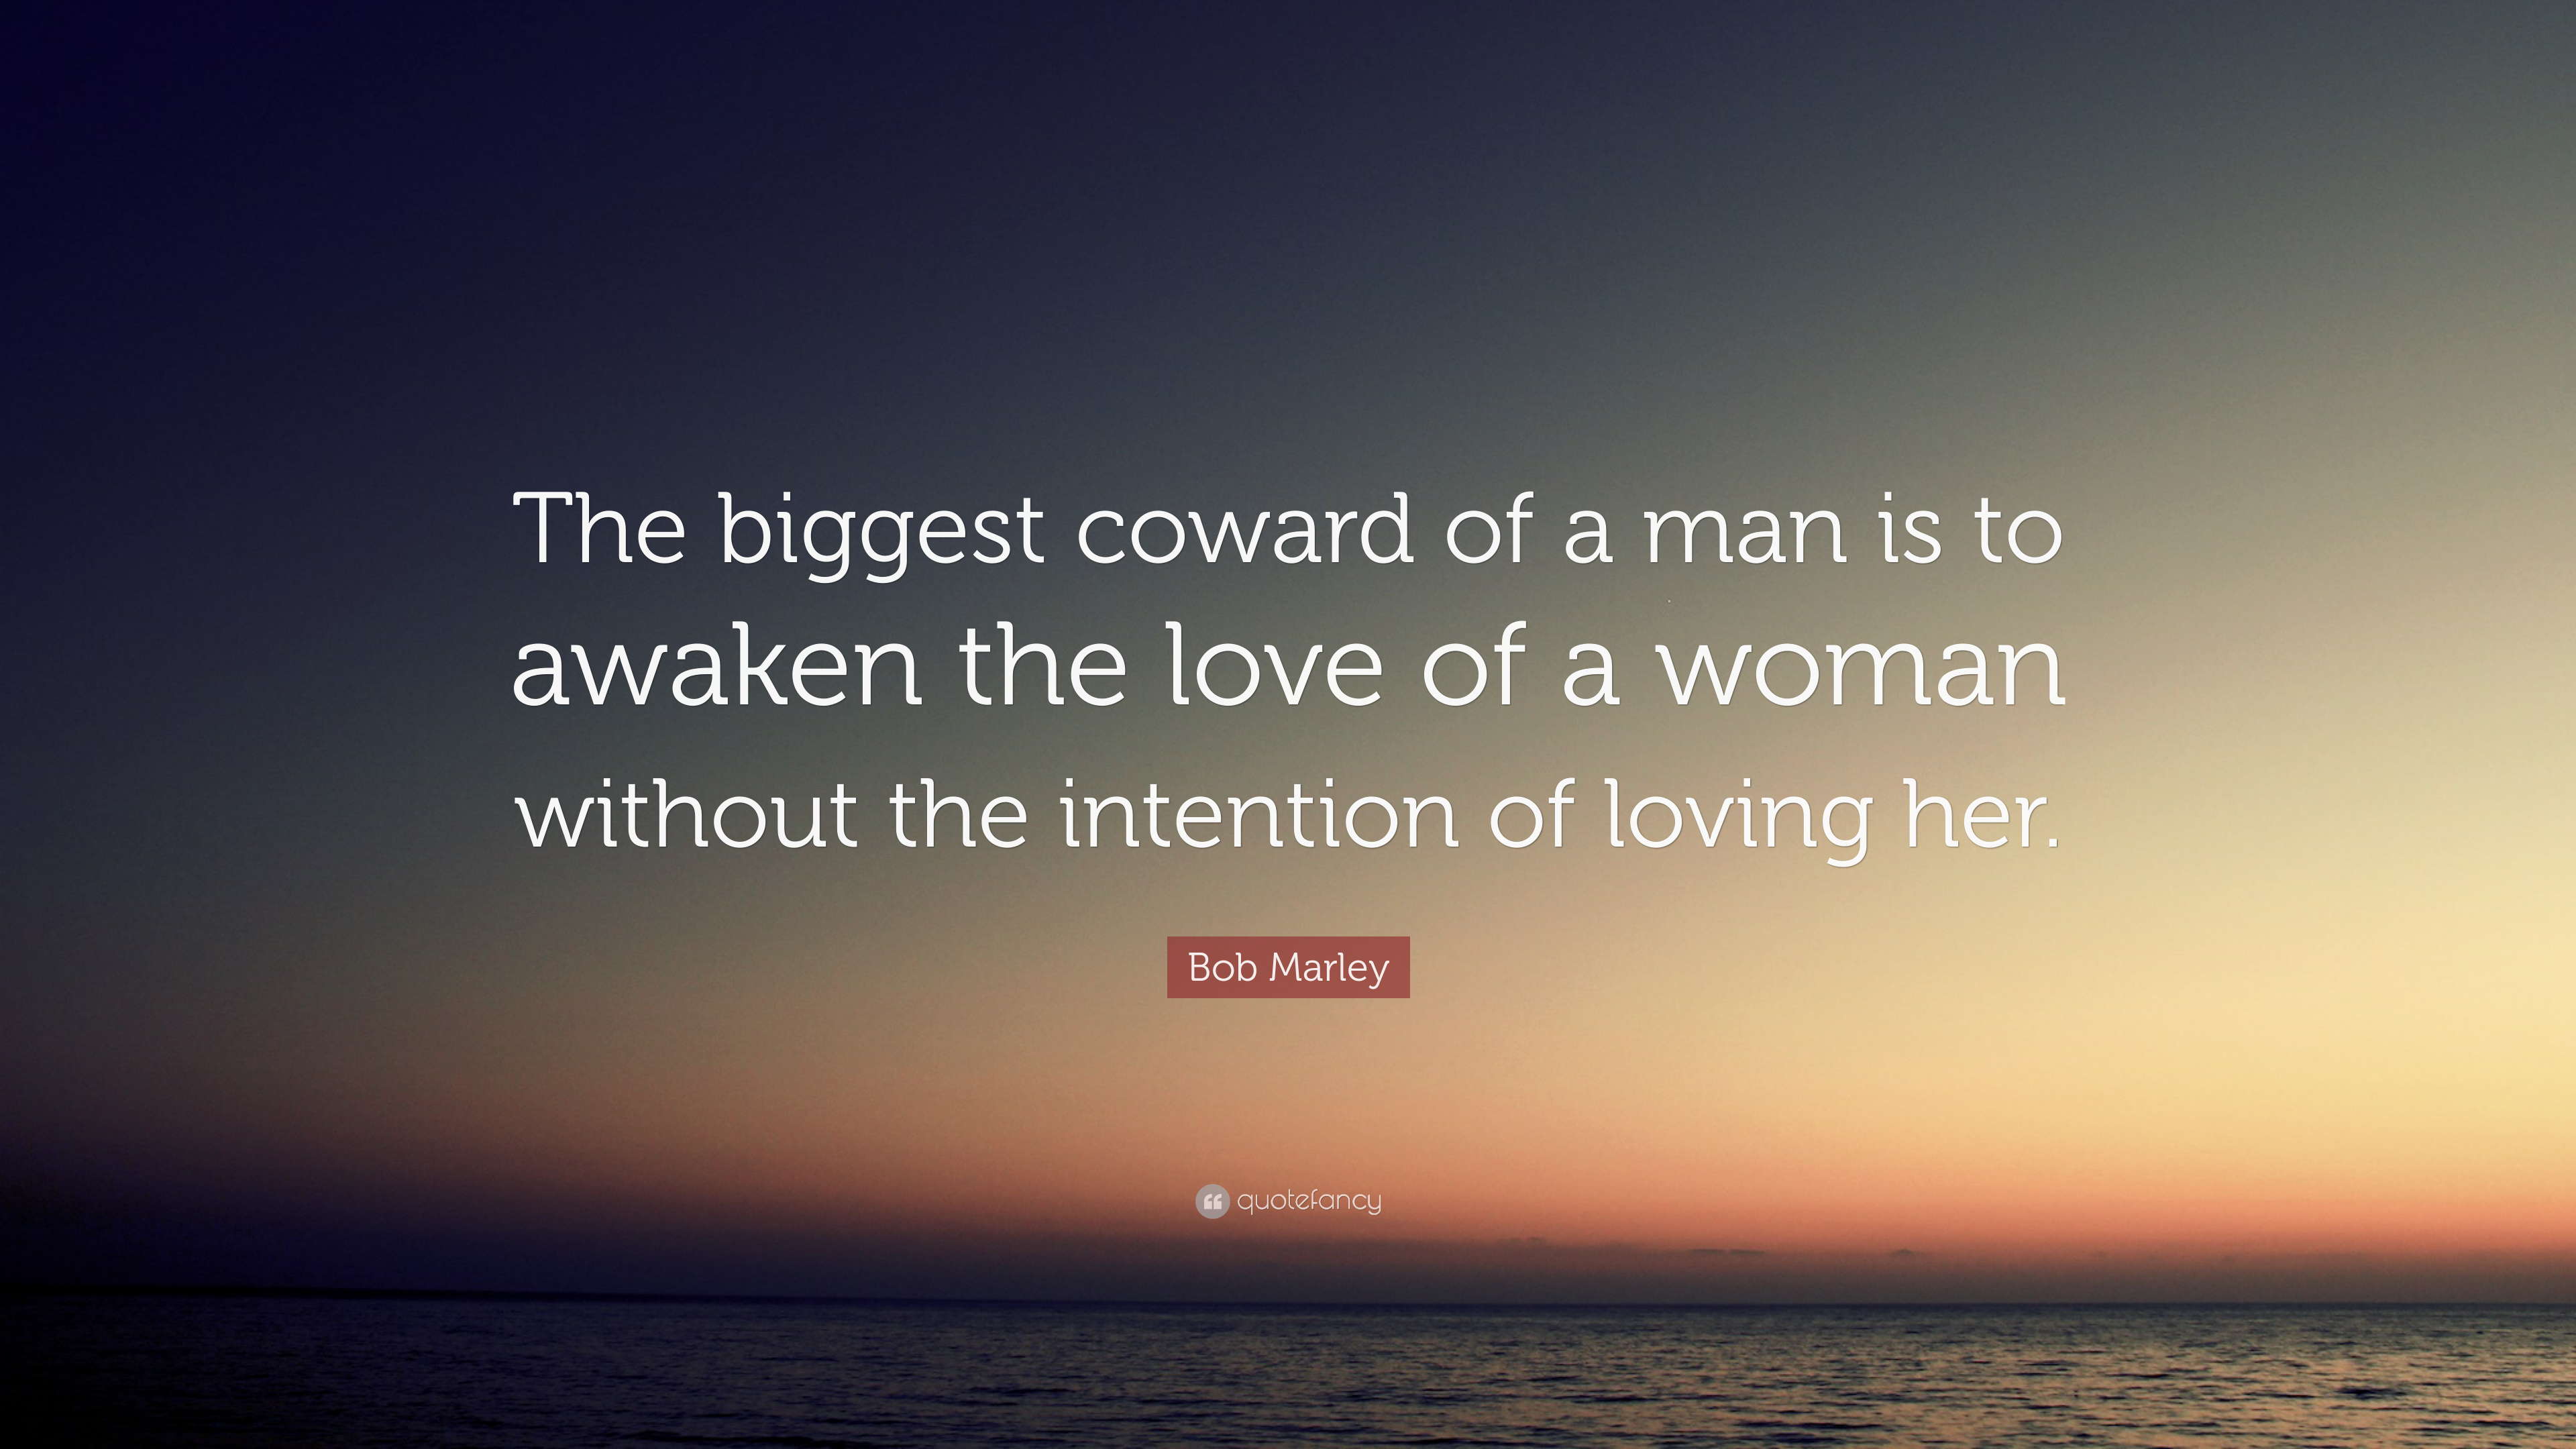 bob marley quote the biggest coward of a man is to